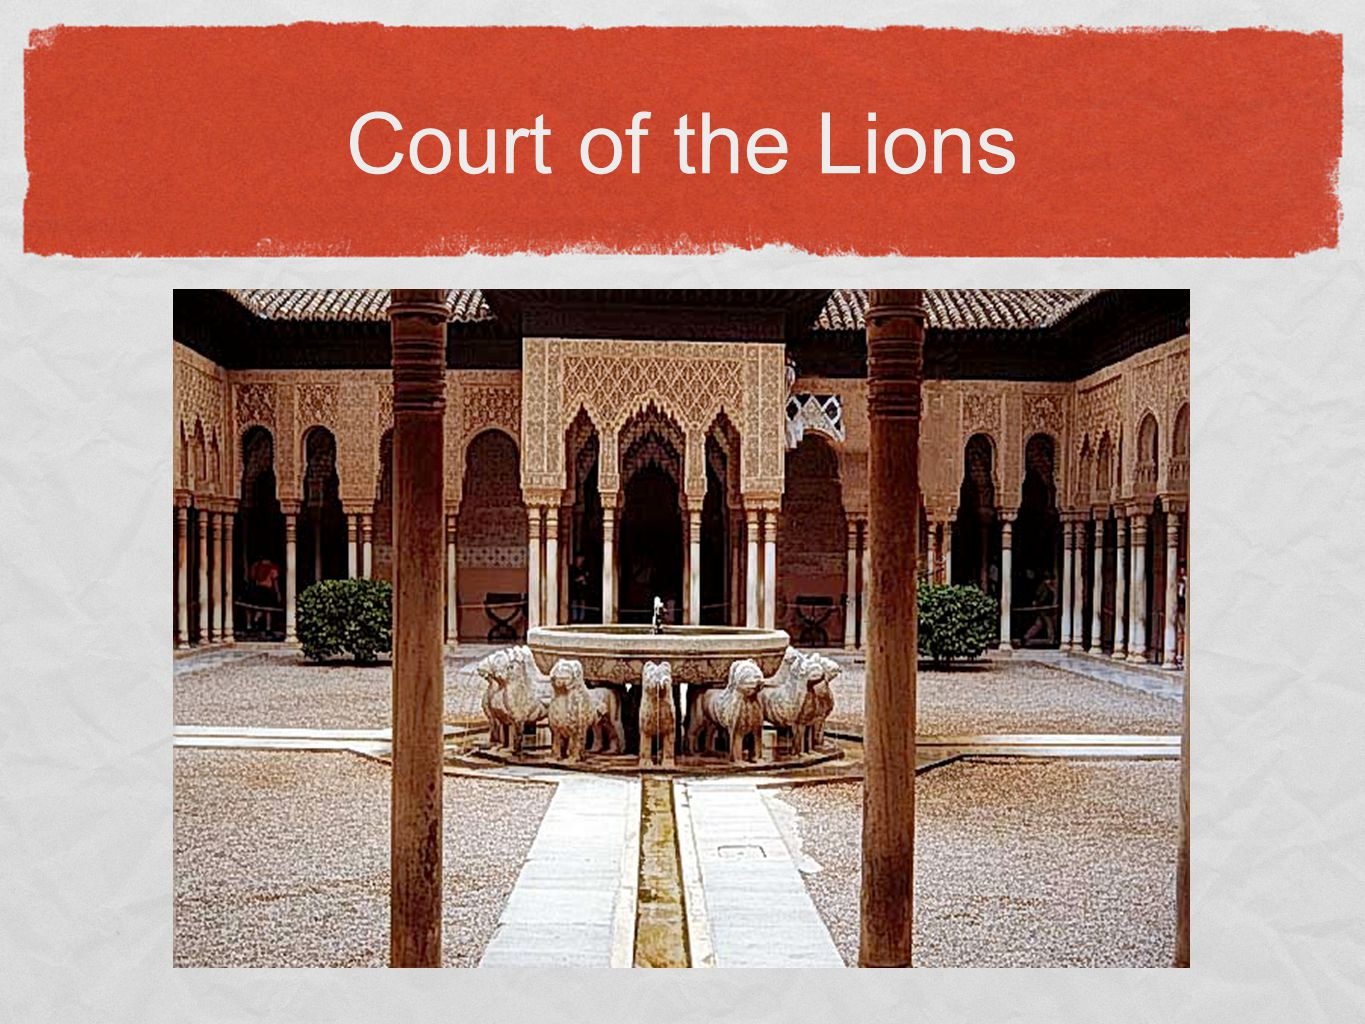 Court of the Lions